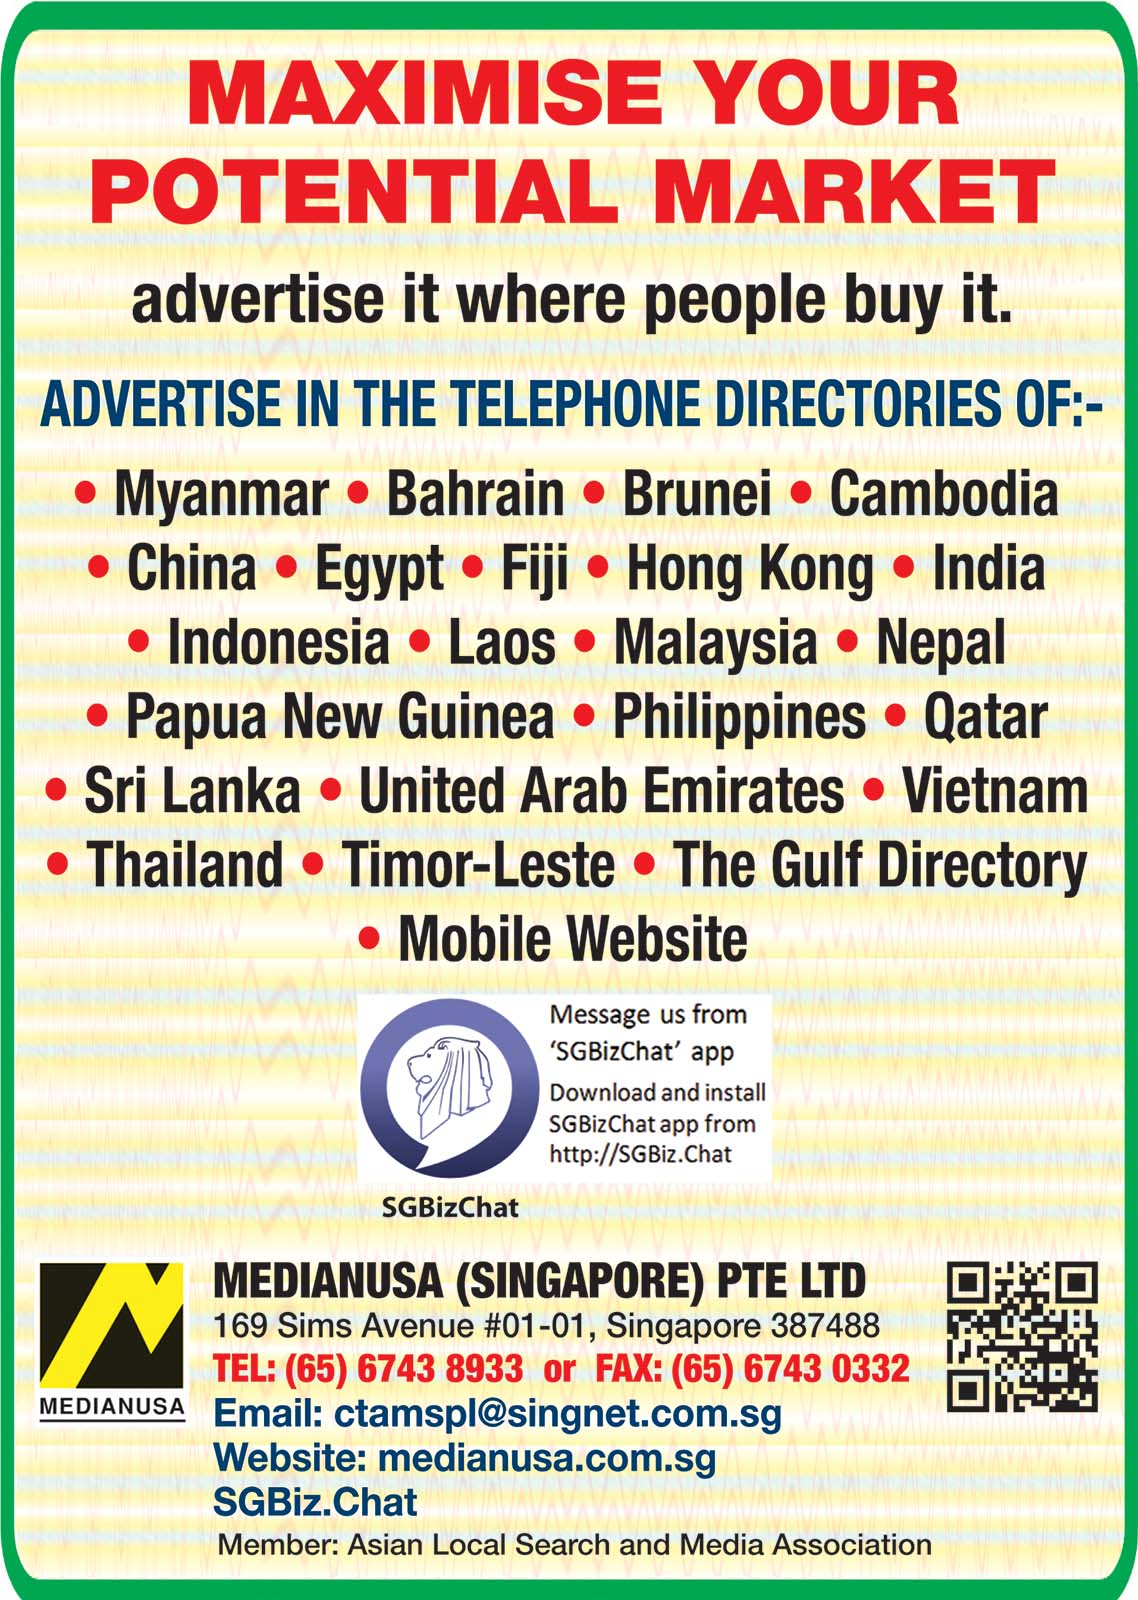 Medianusa (Singapore) Pte Ltd.